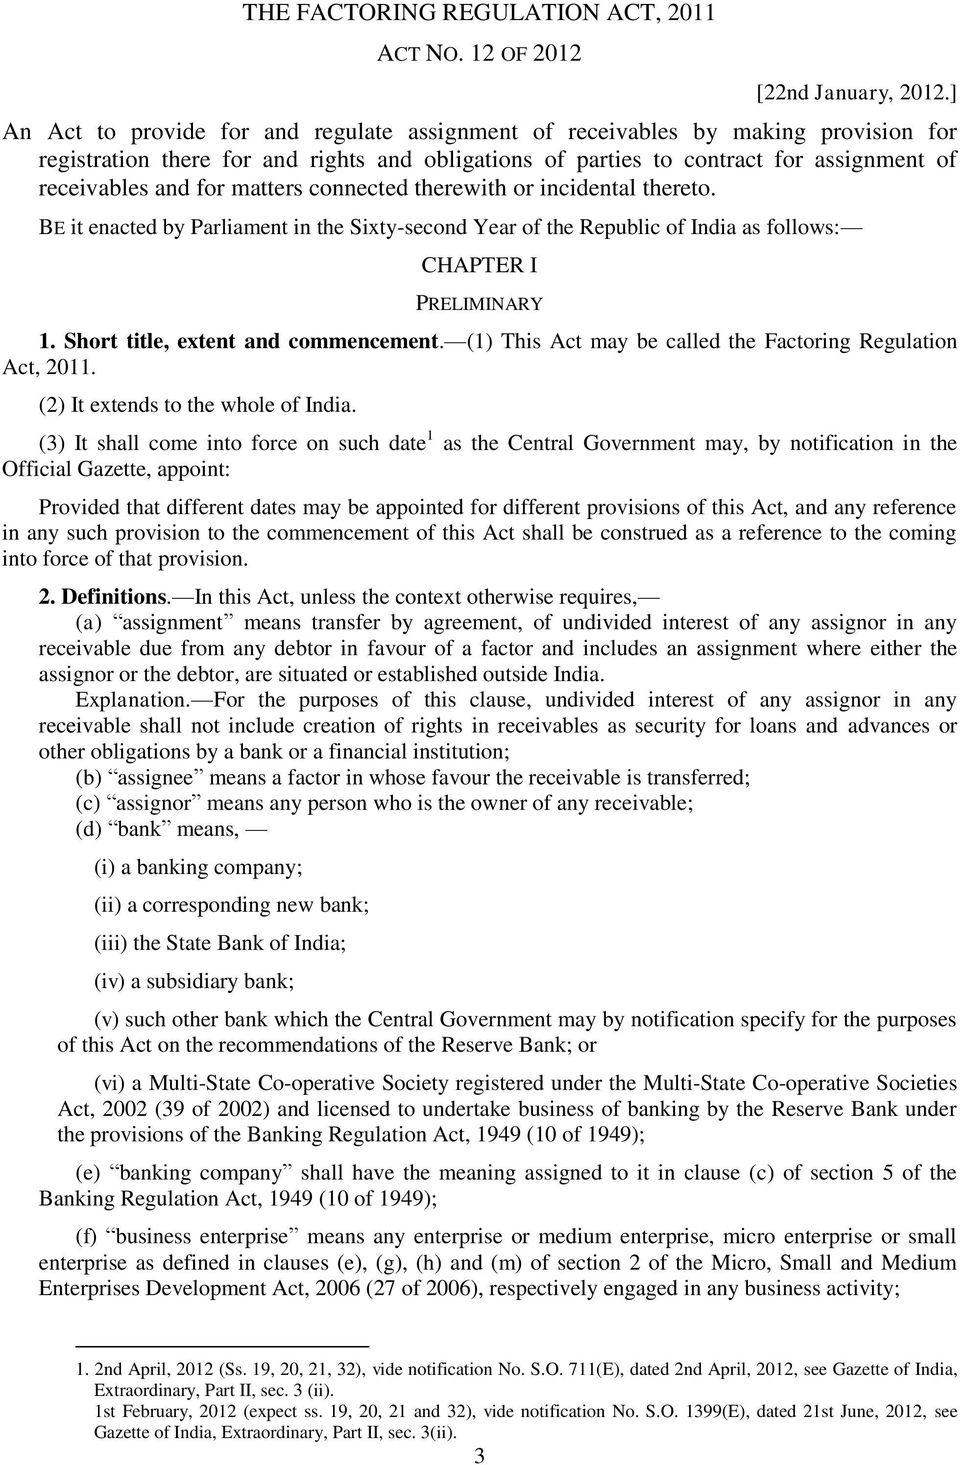 matters connected therewith or incidental thereto. BE it enacted by Parliament in the Sixty-second Year of the Republic of India as follows: CHAPTER I PRELIMINARY 1.